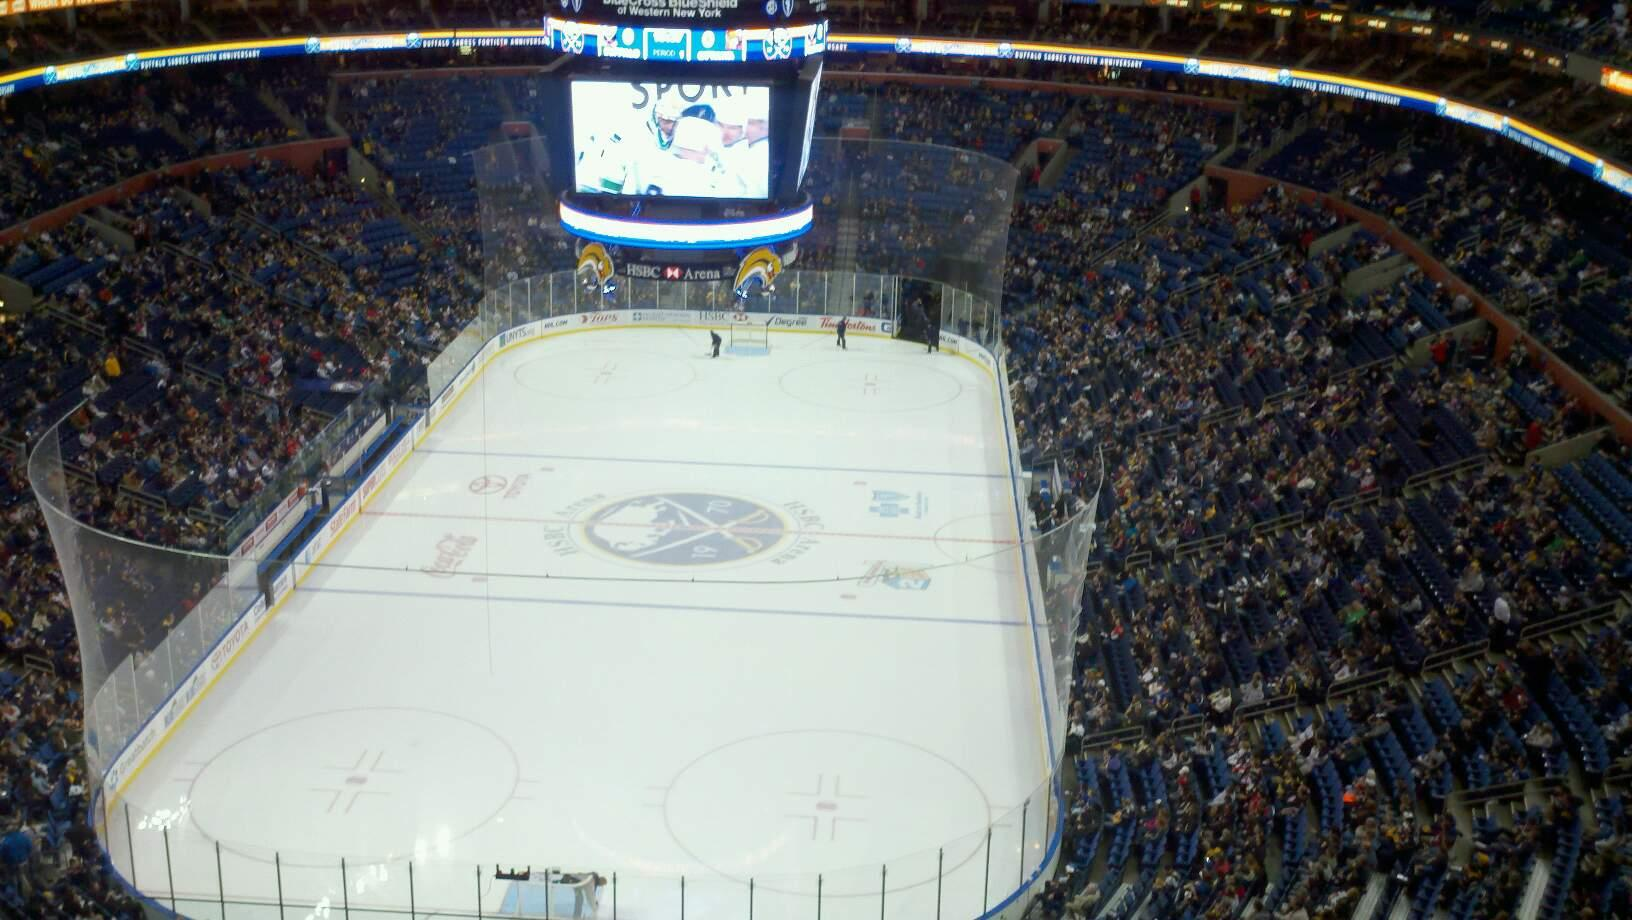 KeyBank Center Section 326 Row 14 Seat 26